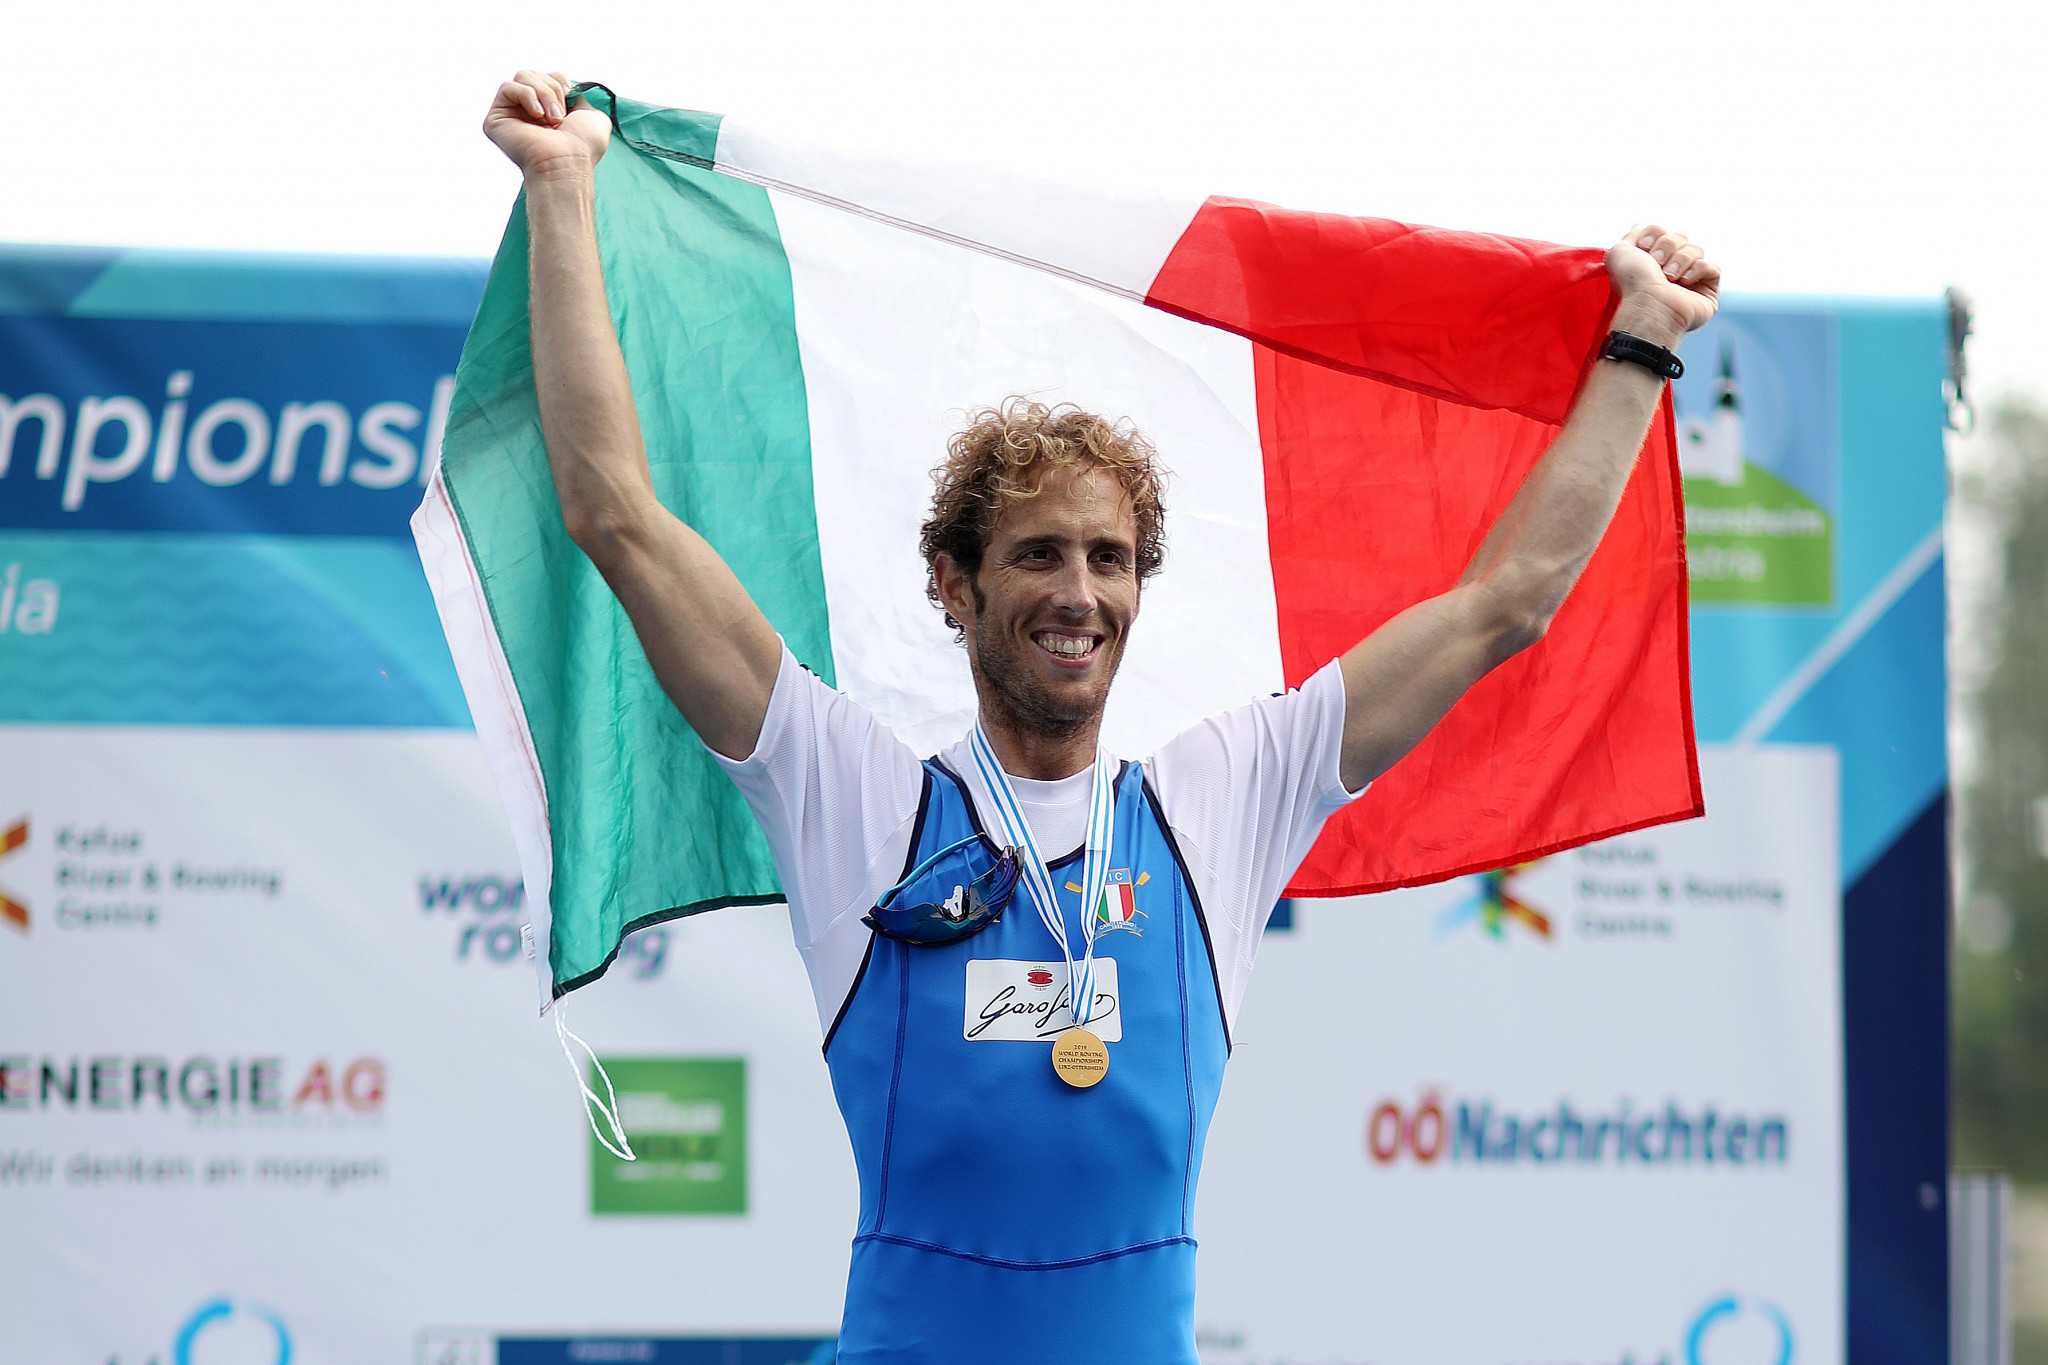 Goretti among European qualifiers for 2021 World Rowing Indoor Championships